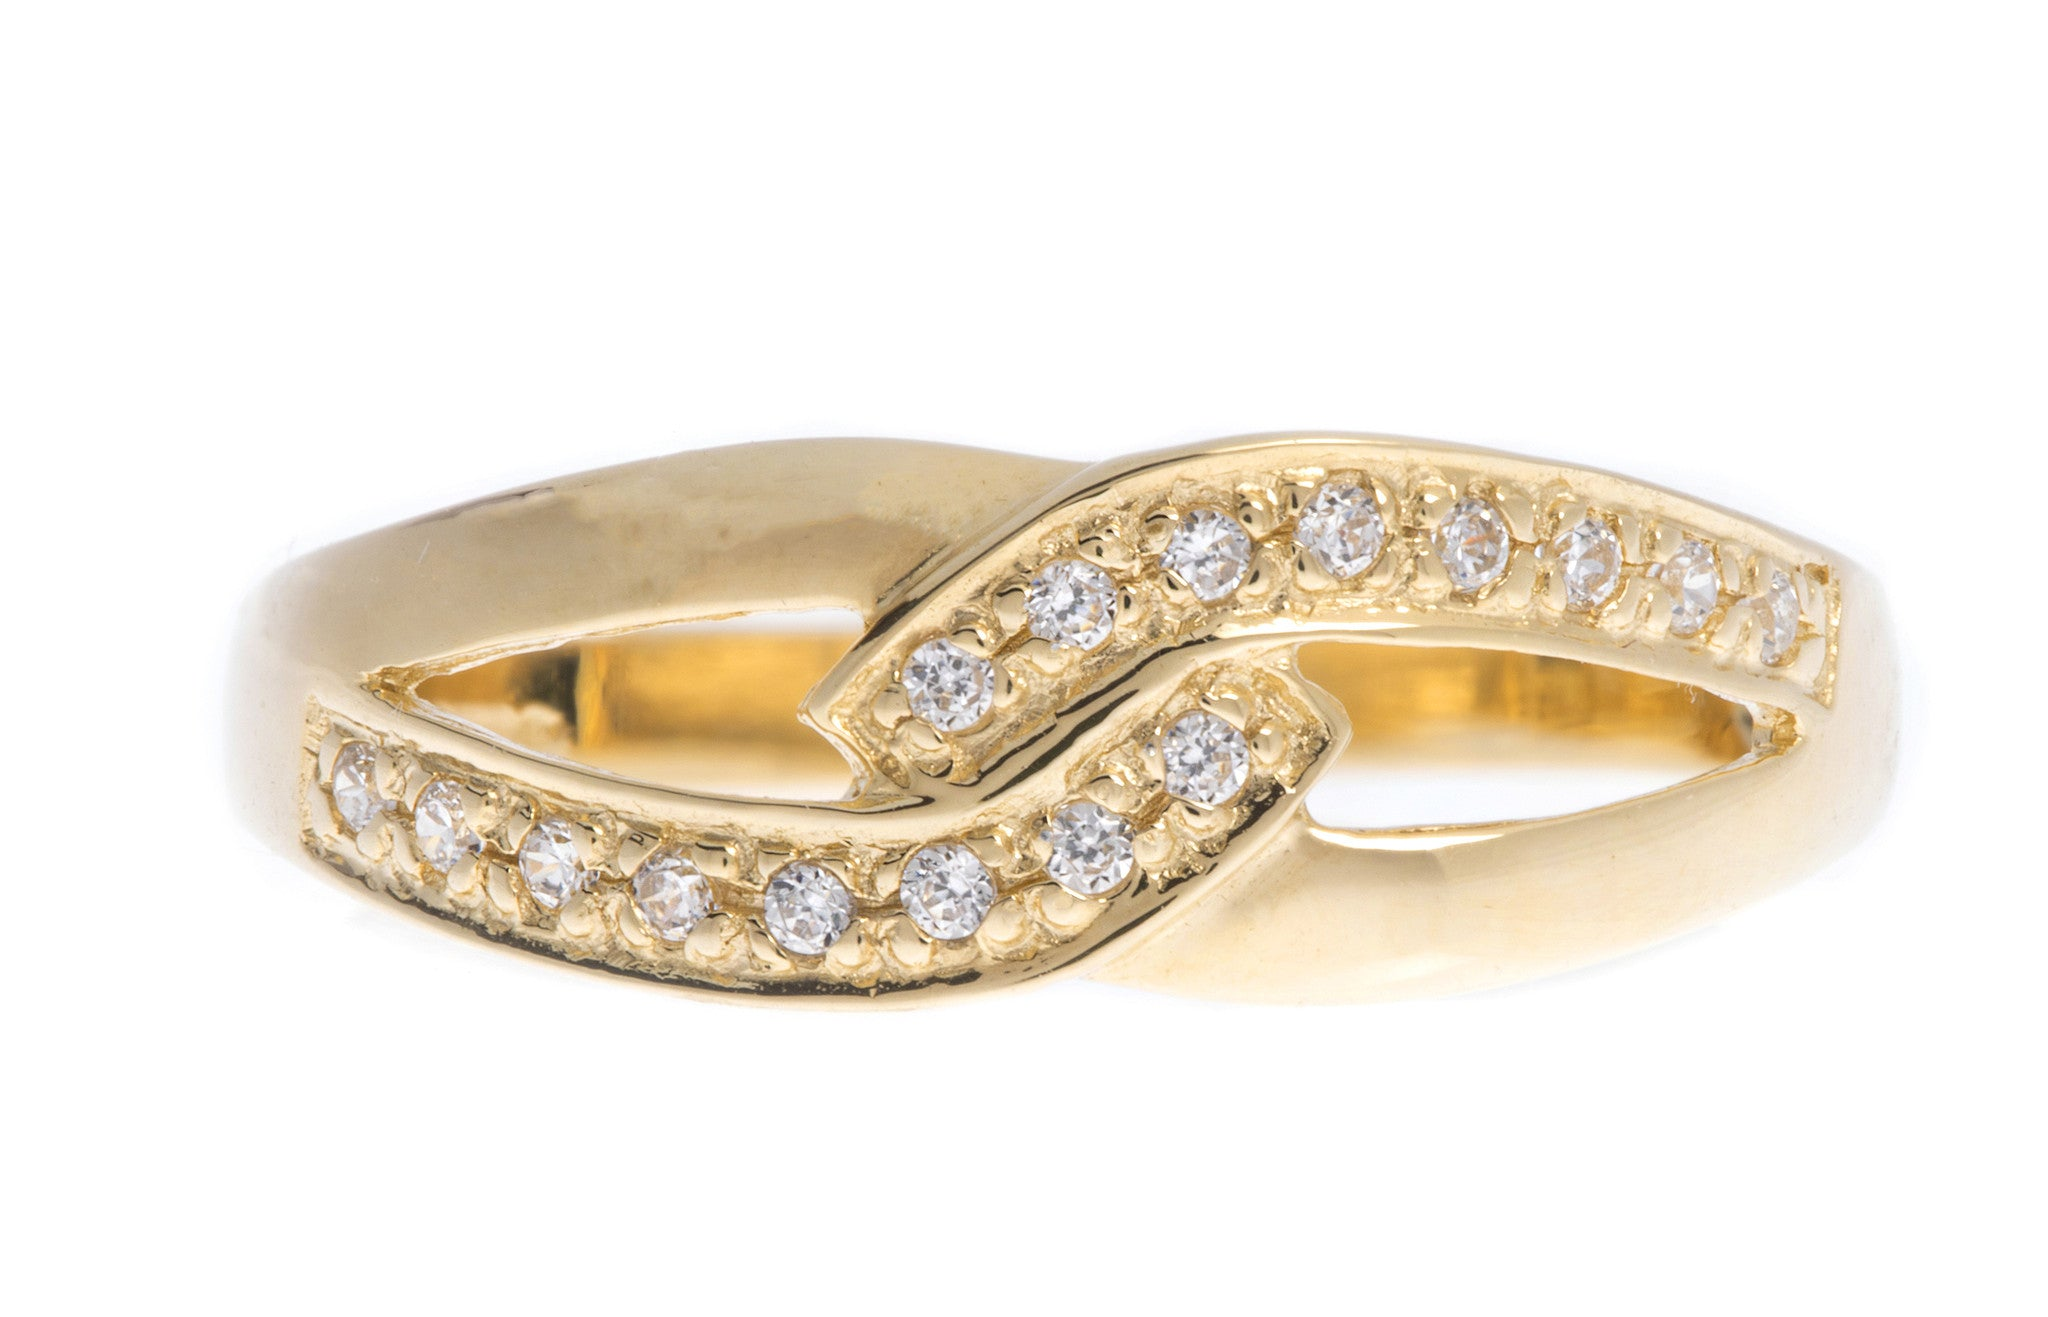 18ct Yellow Gold Cubic Zirconia Dress Ring, Minar Jewellers - 3